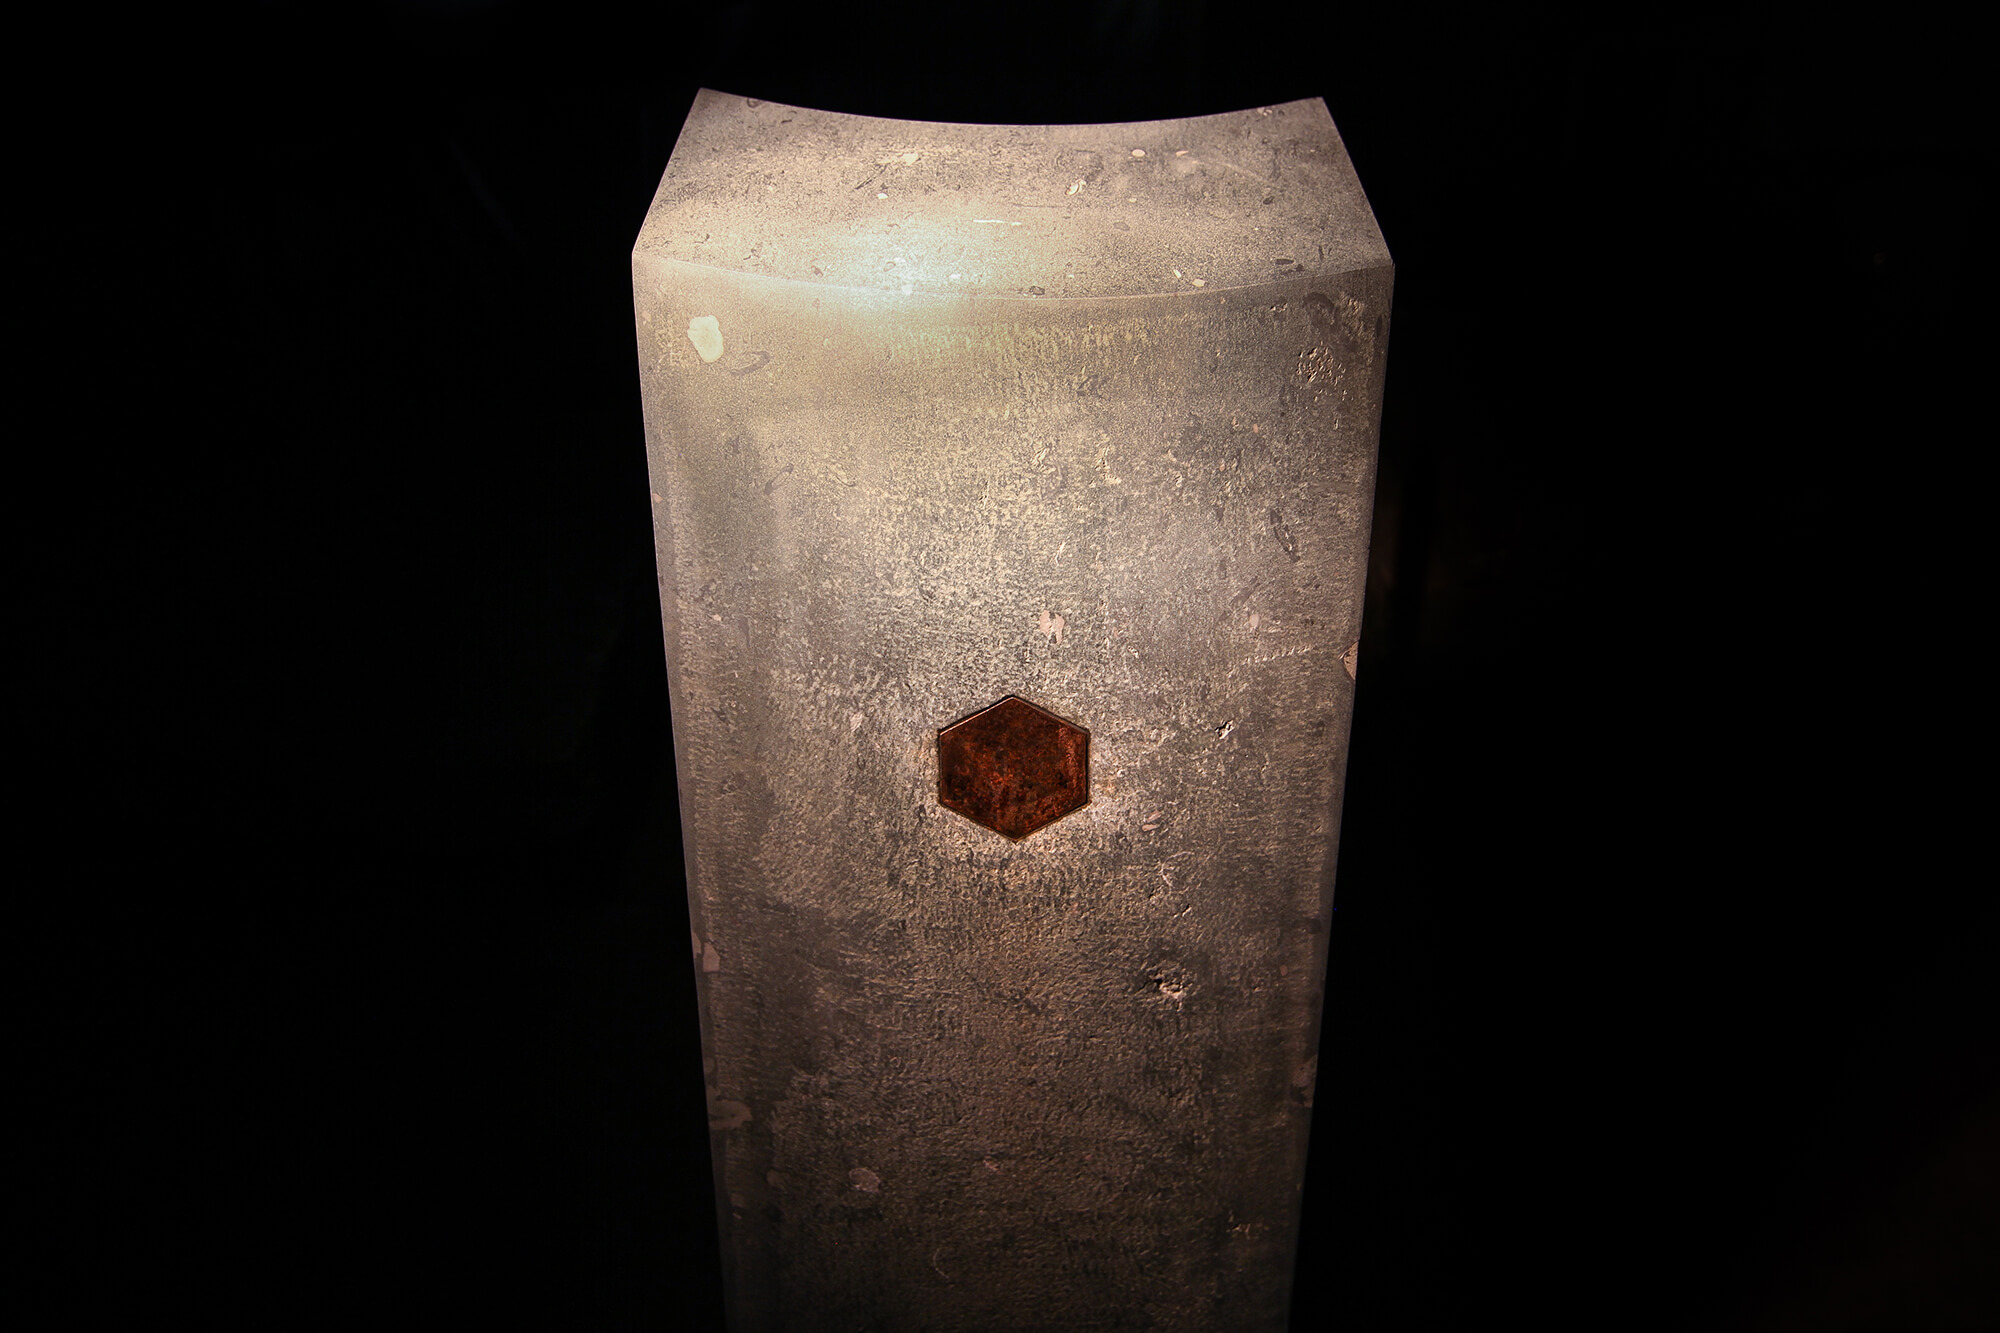 Grabstele mit Hexagon